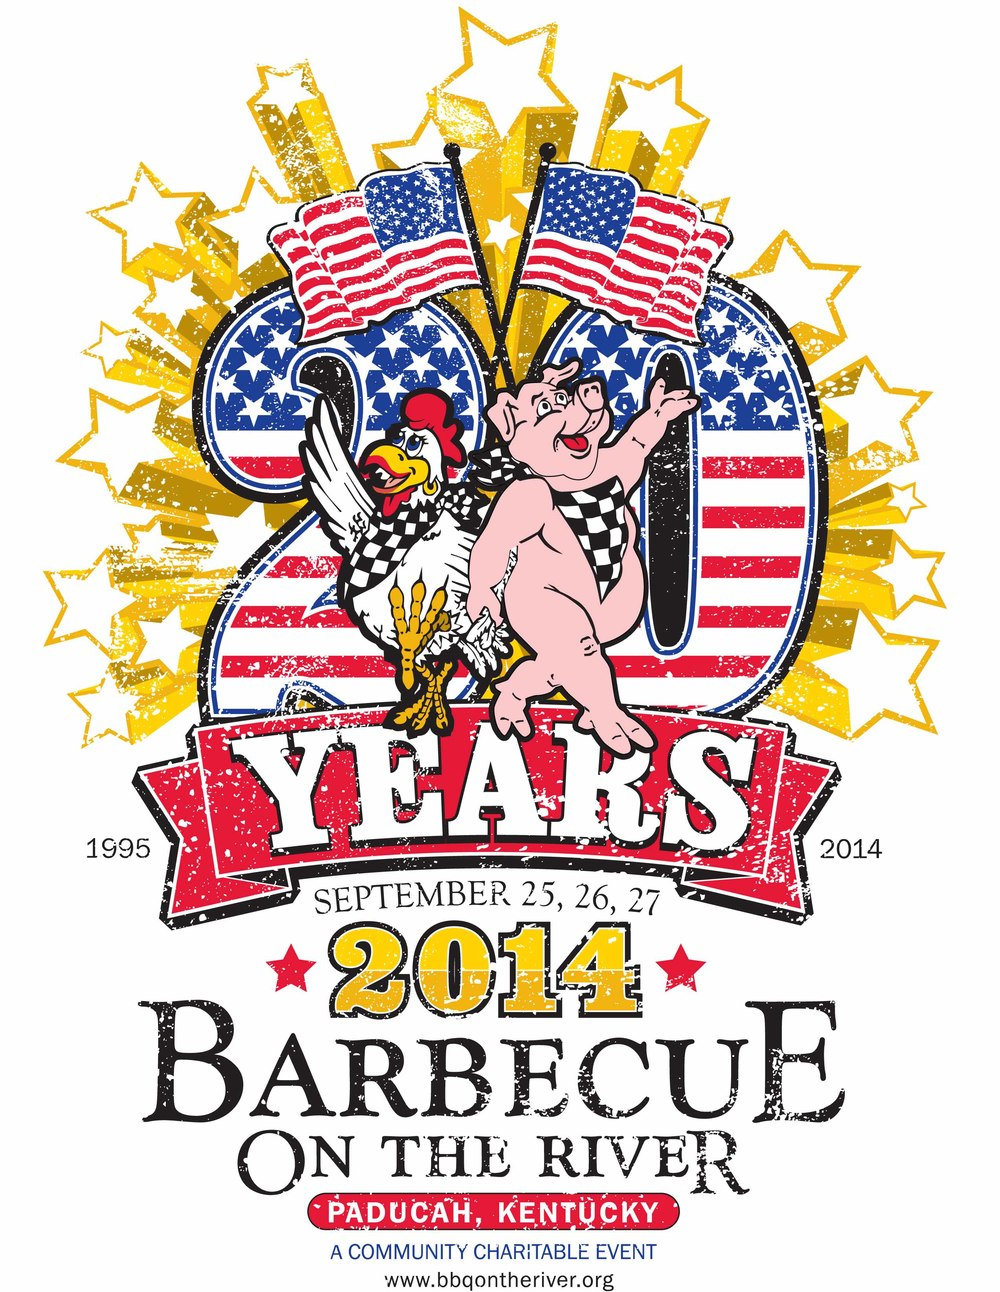 Barbecue on the River logo 2014